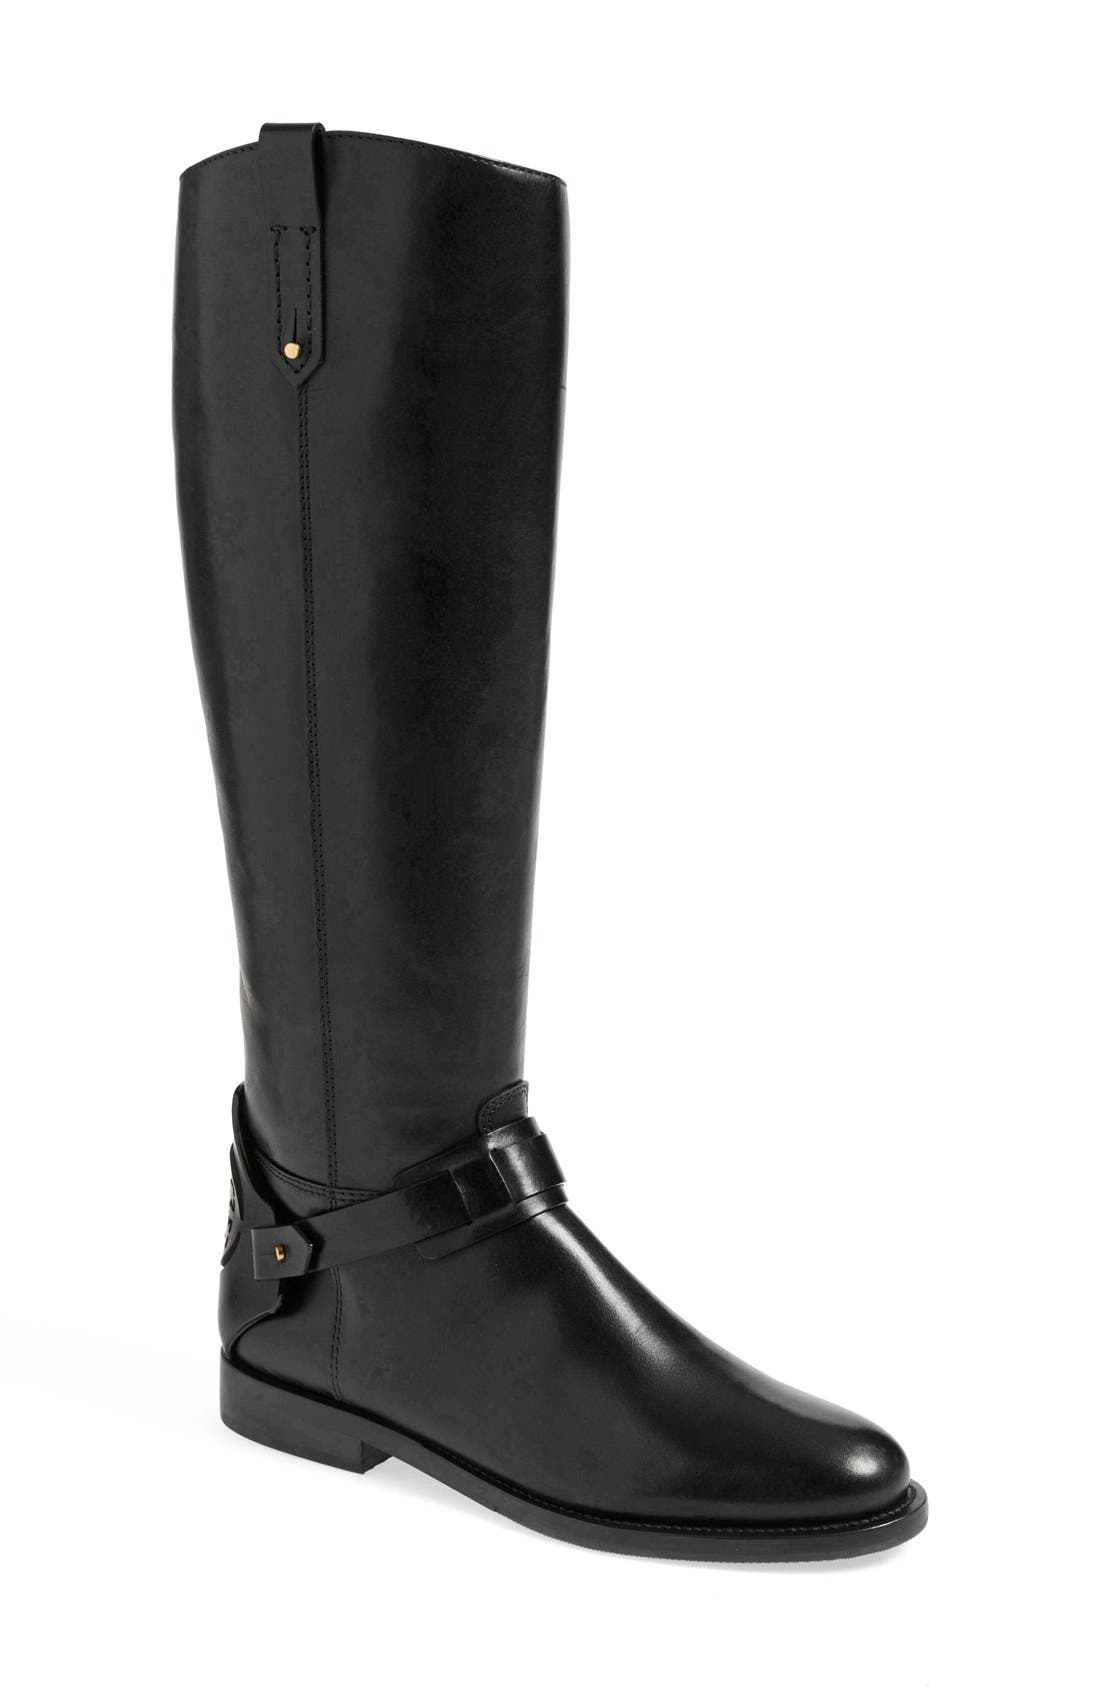 Alternate Image 1 Selected - Tory Burch 'Derby' Leather Riding Boot (Women)